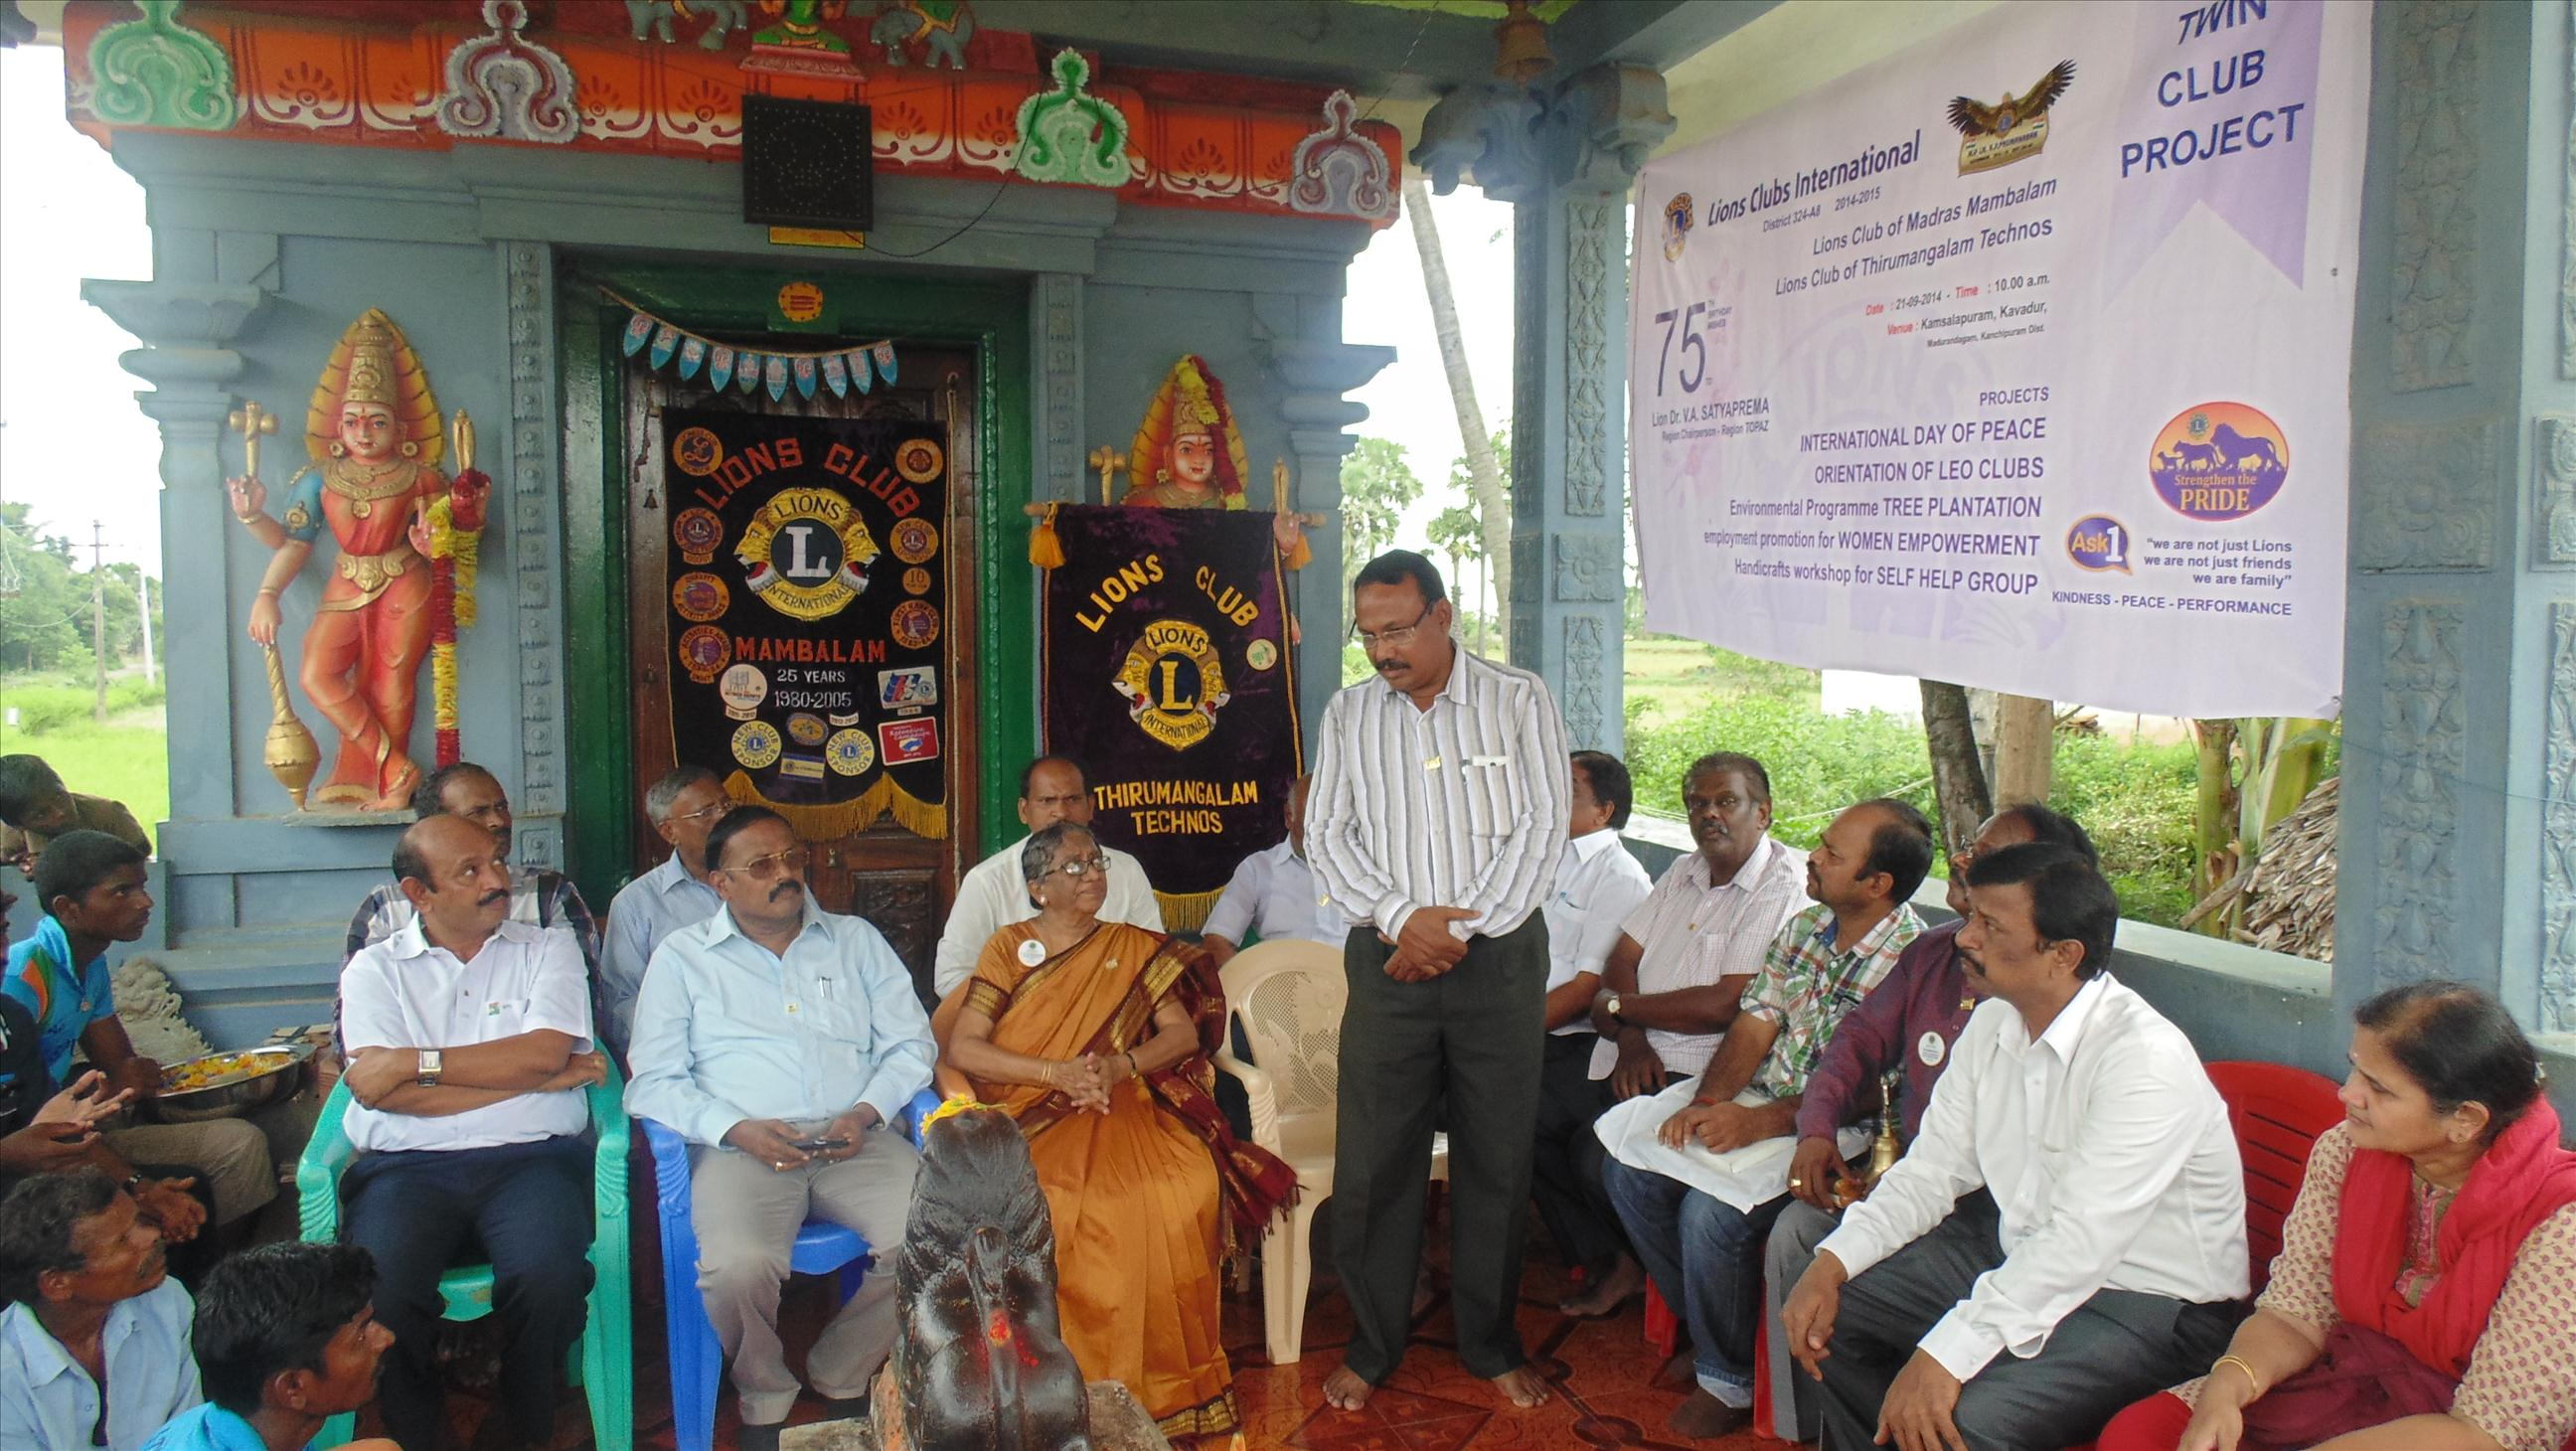 Self Help Group - Project at KAVADUR, Chennai